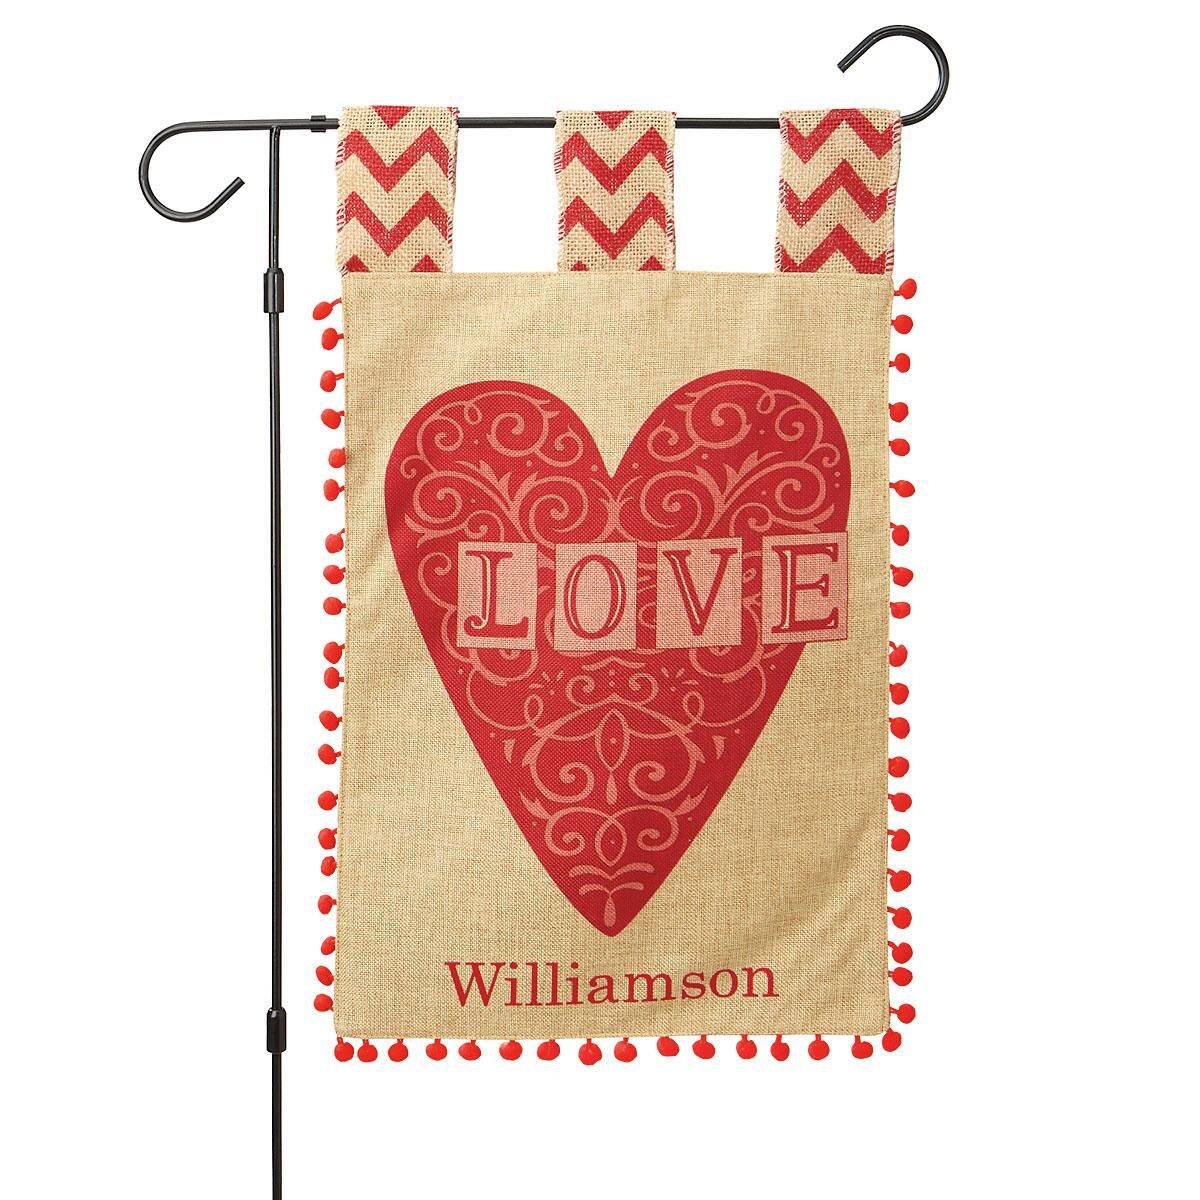 Personalized Burlap Heart Garden Flag and Garden Flag Stand